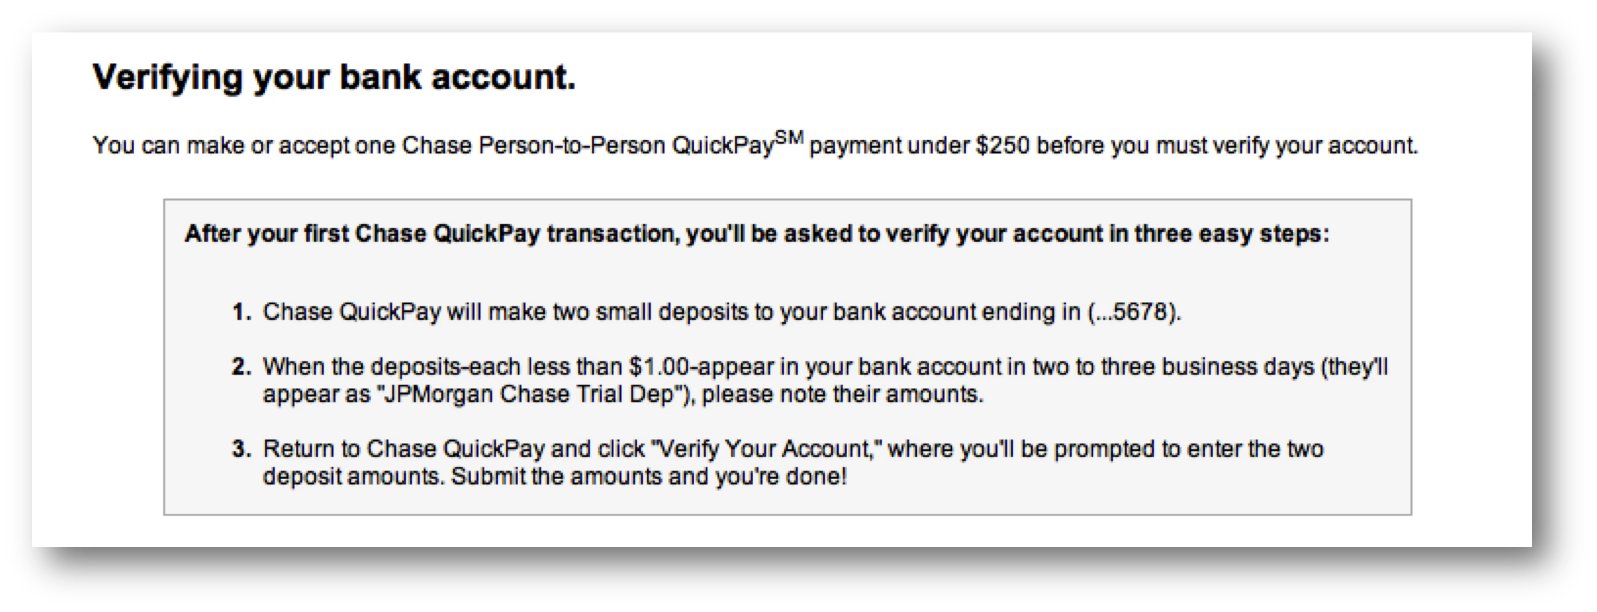 While It Does Require A Couple Of Setup Steps, The Instructions Walk You  Through The How To Open A Checking Account